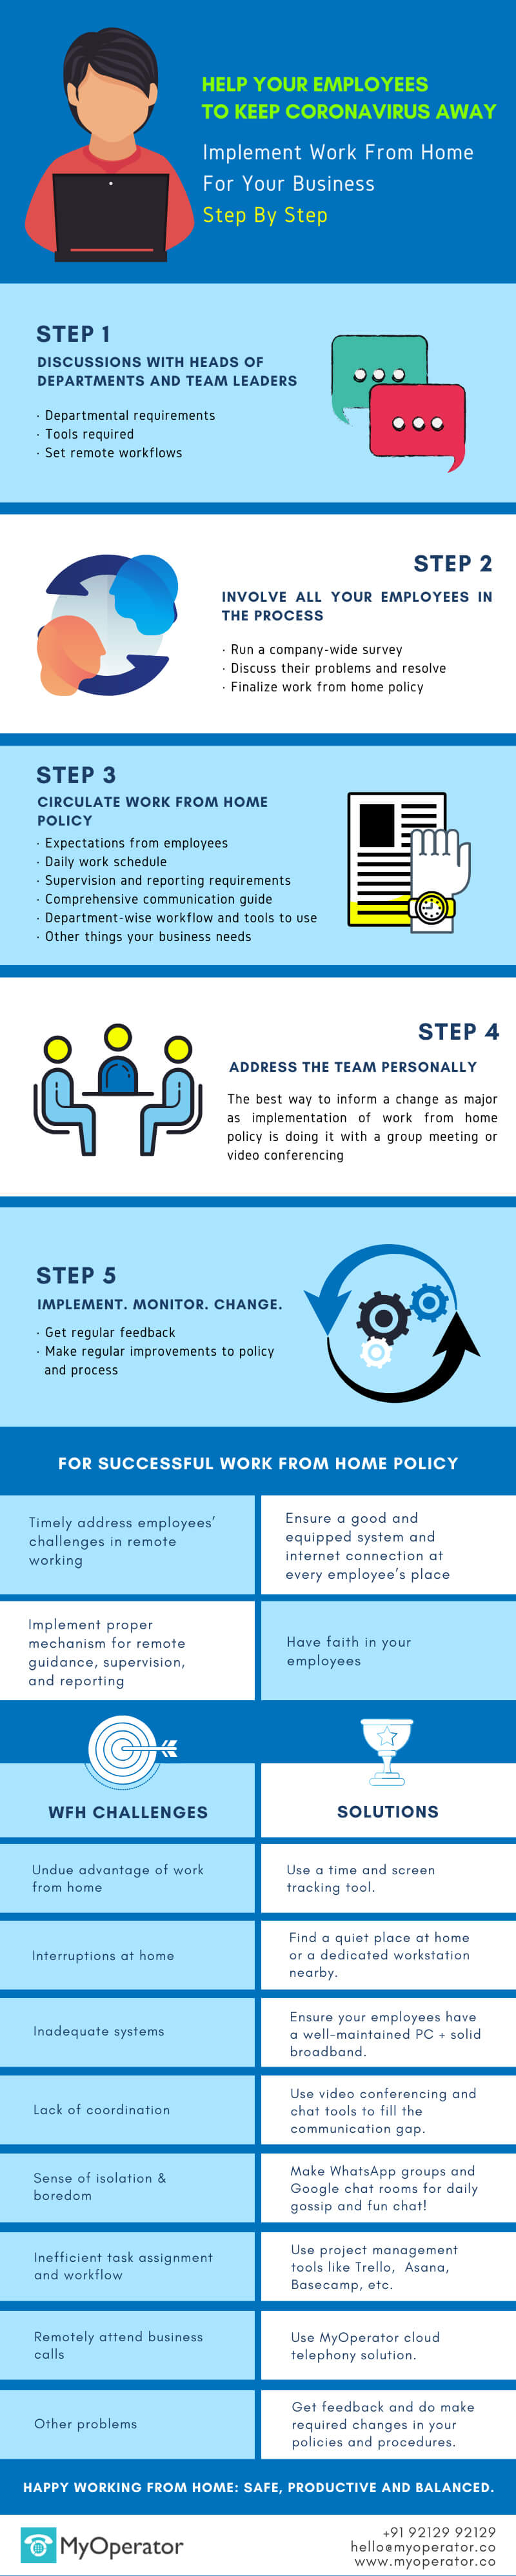 Work From Home infographic by MyOperator